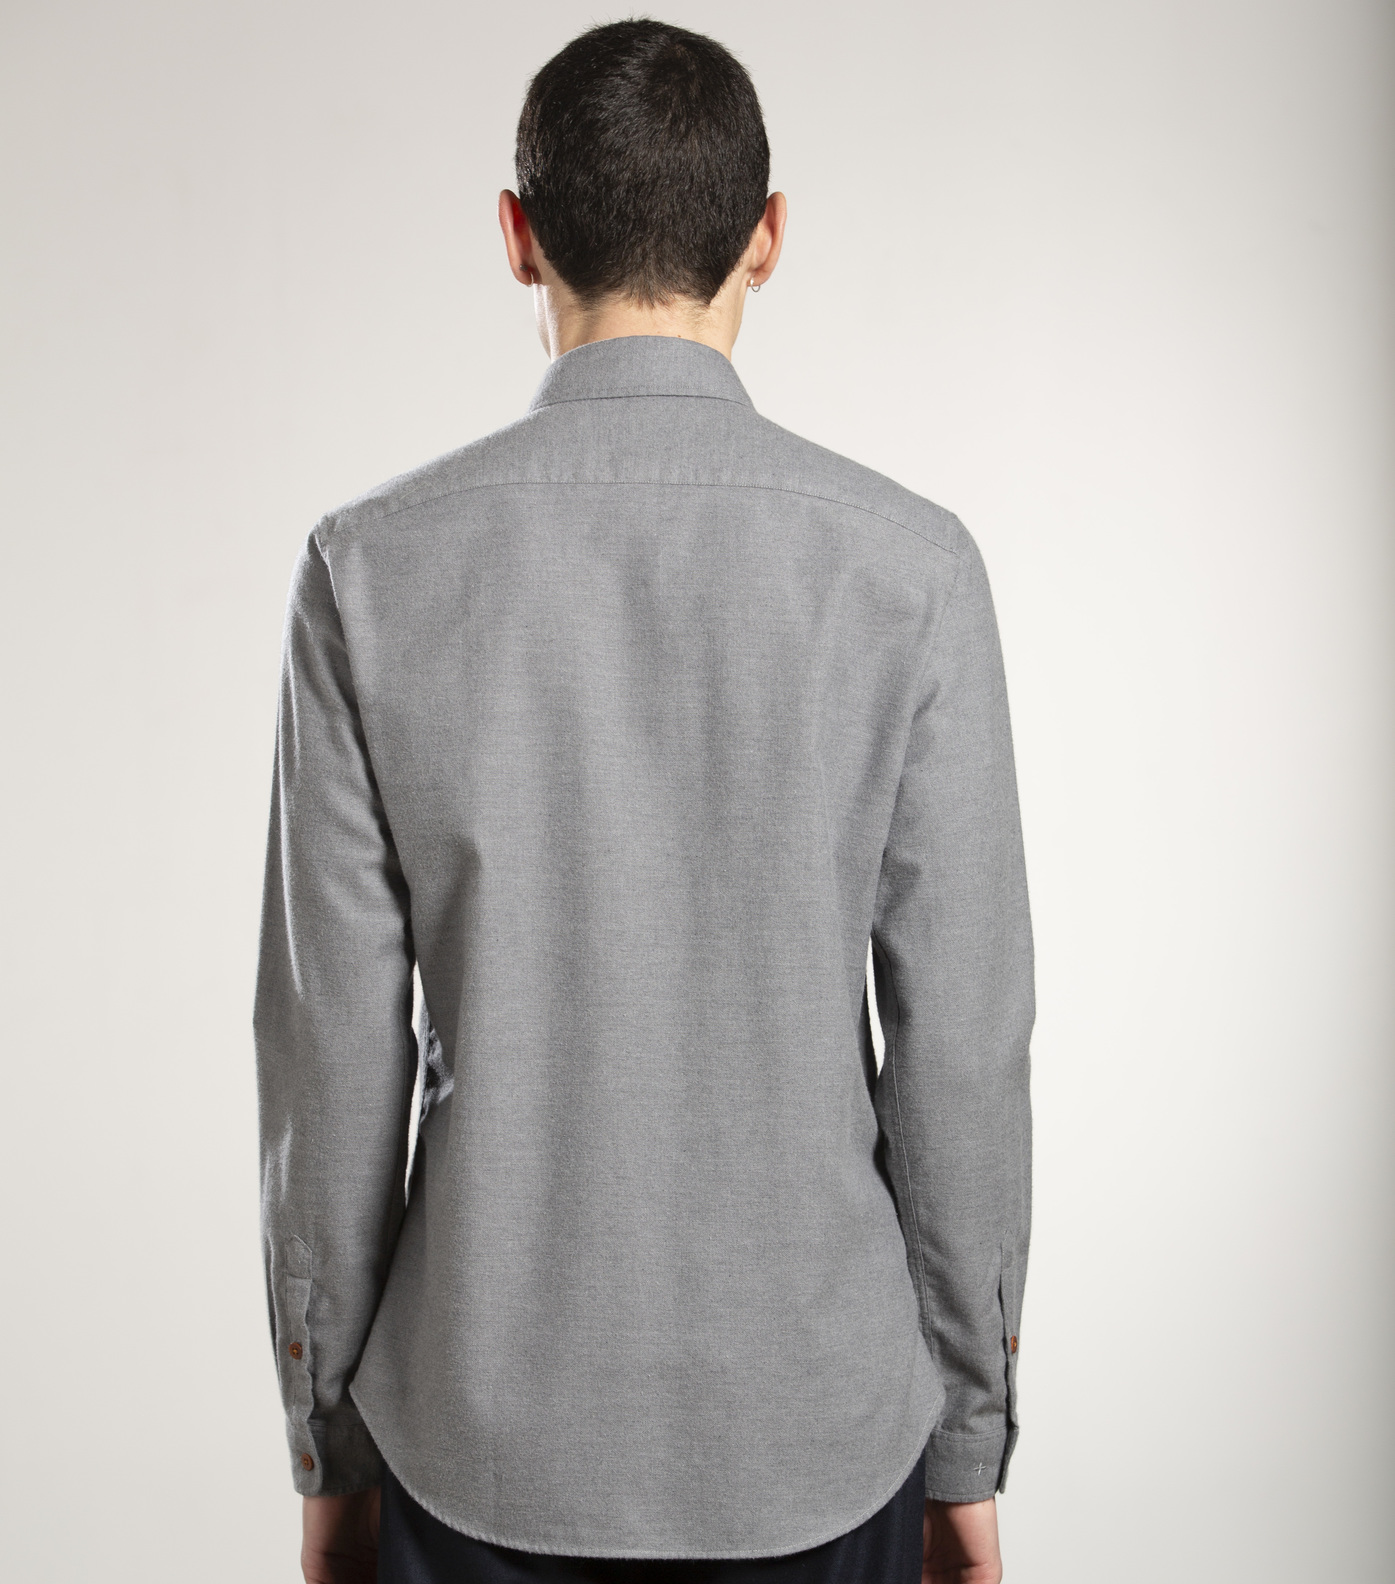 SHIRT ROSSEL - Grey